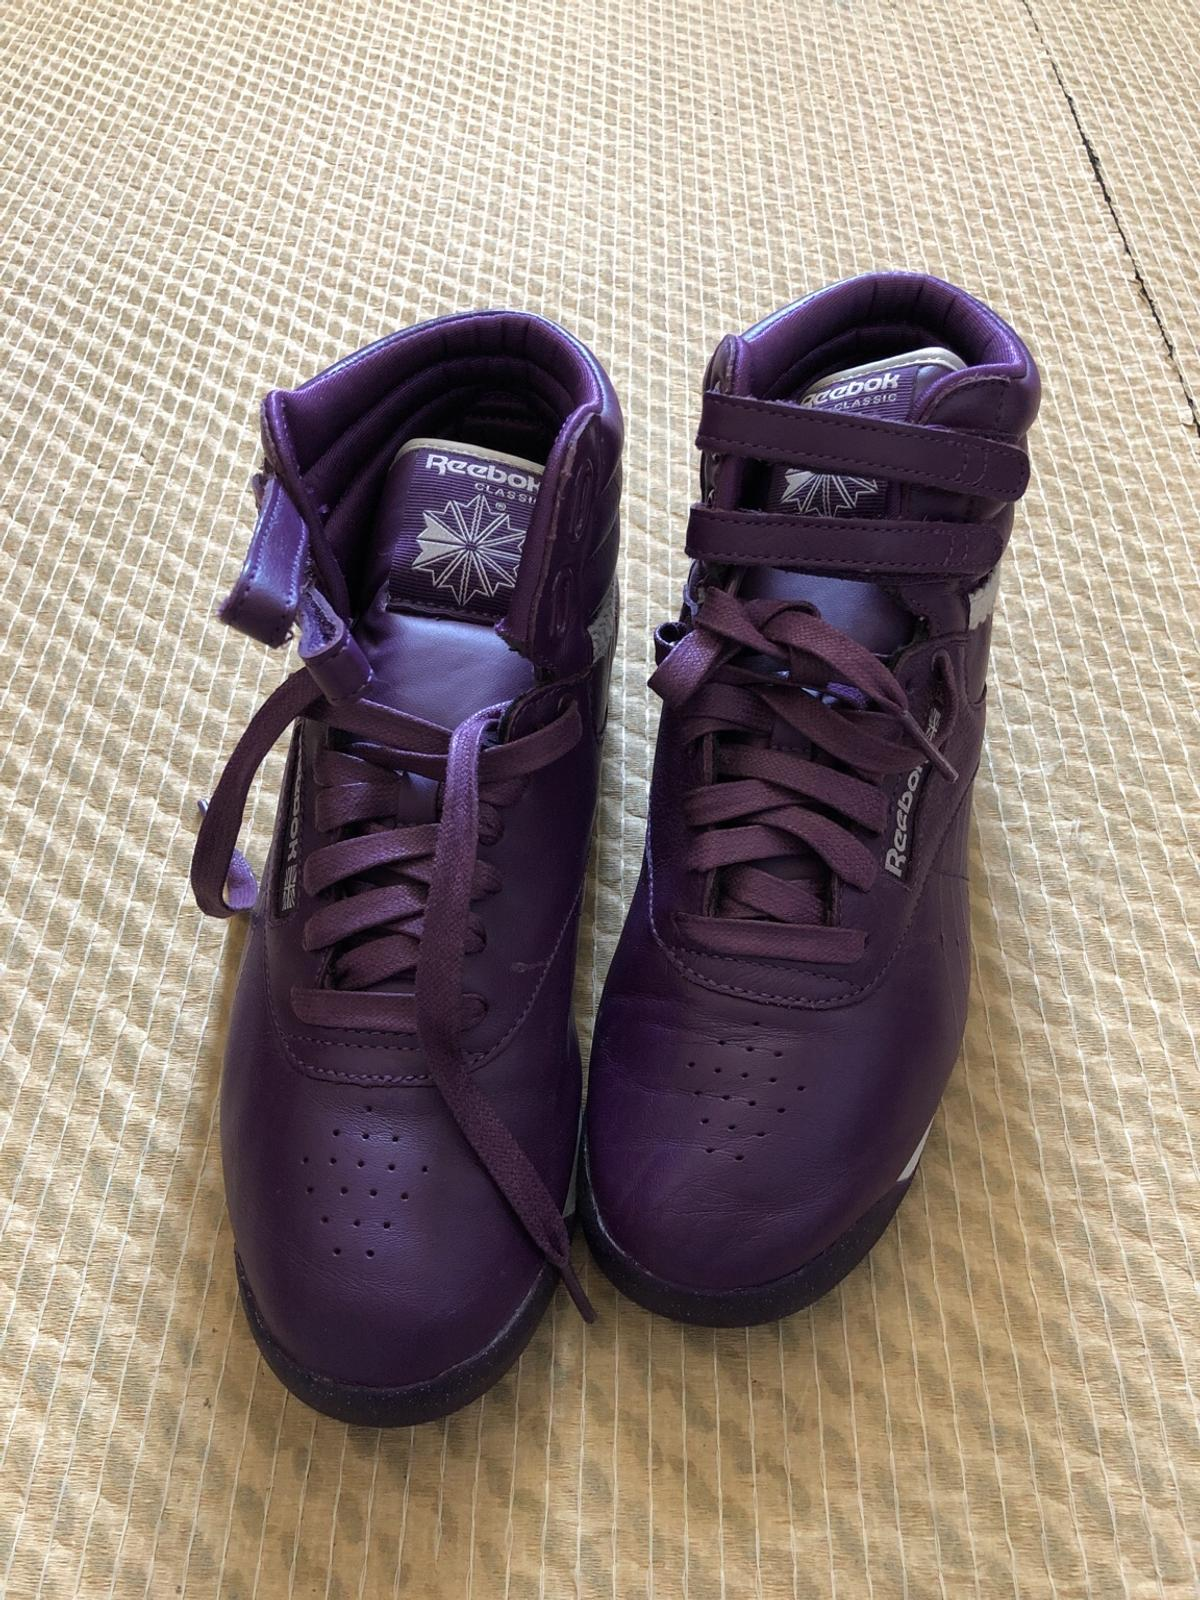 reebok trainer boots